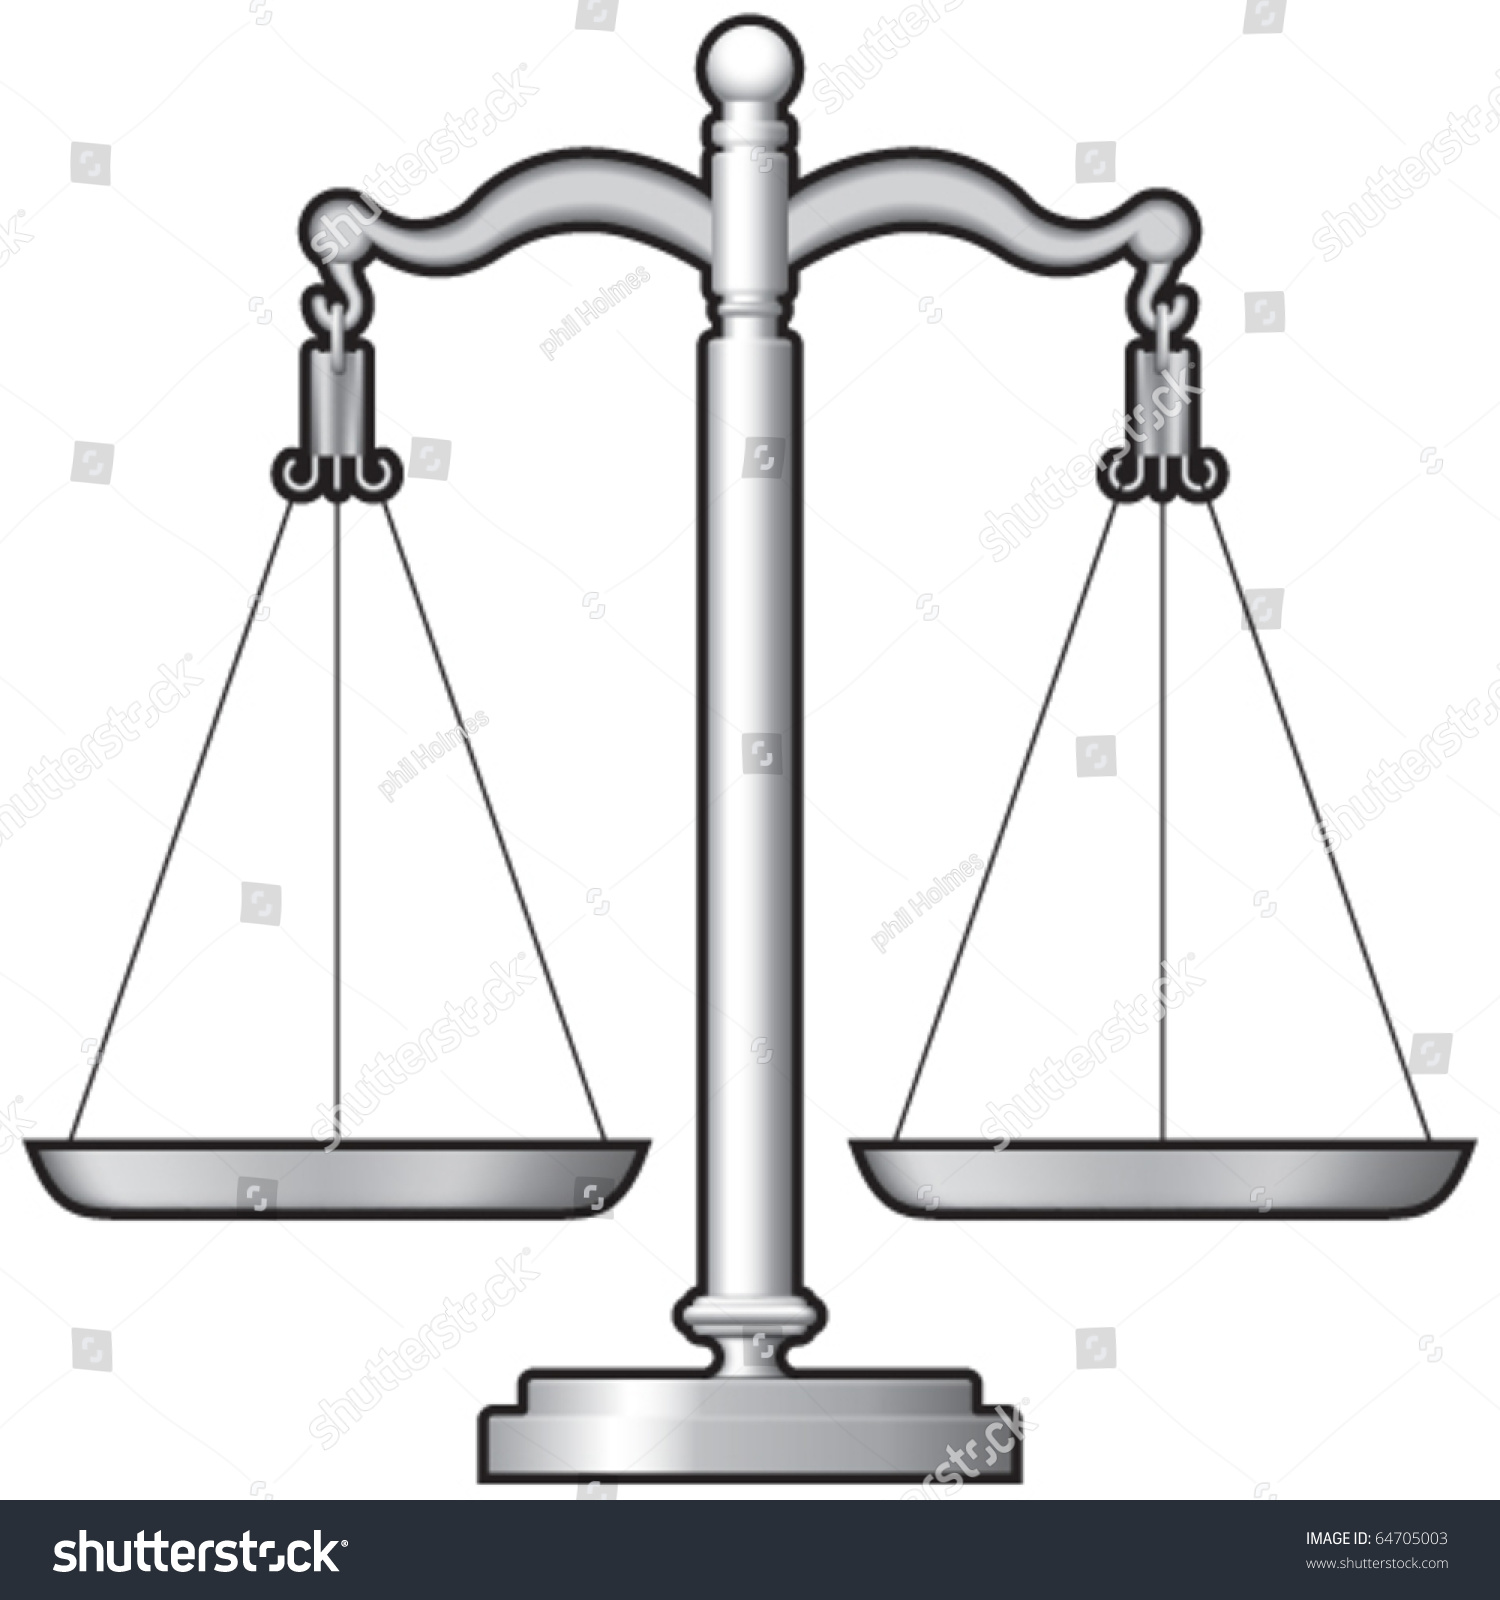 Justice Shop Measuring Scales Stock Vector 64705003 - Shutterstock